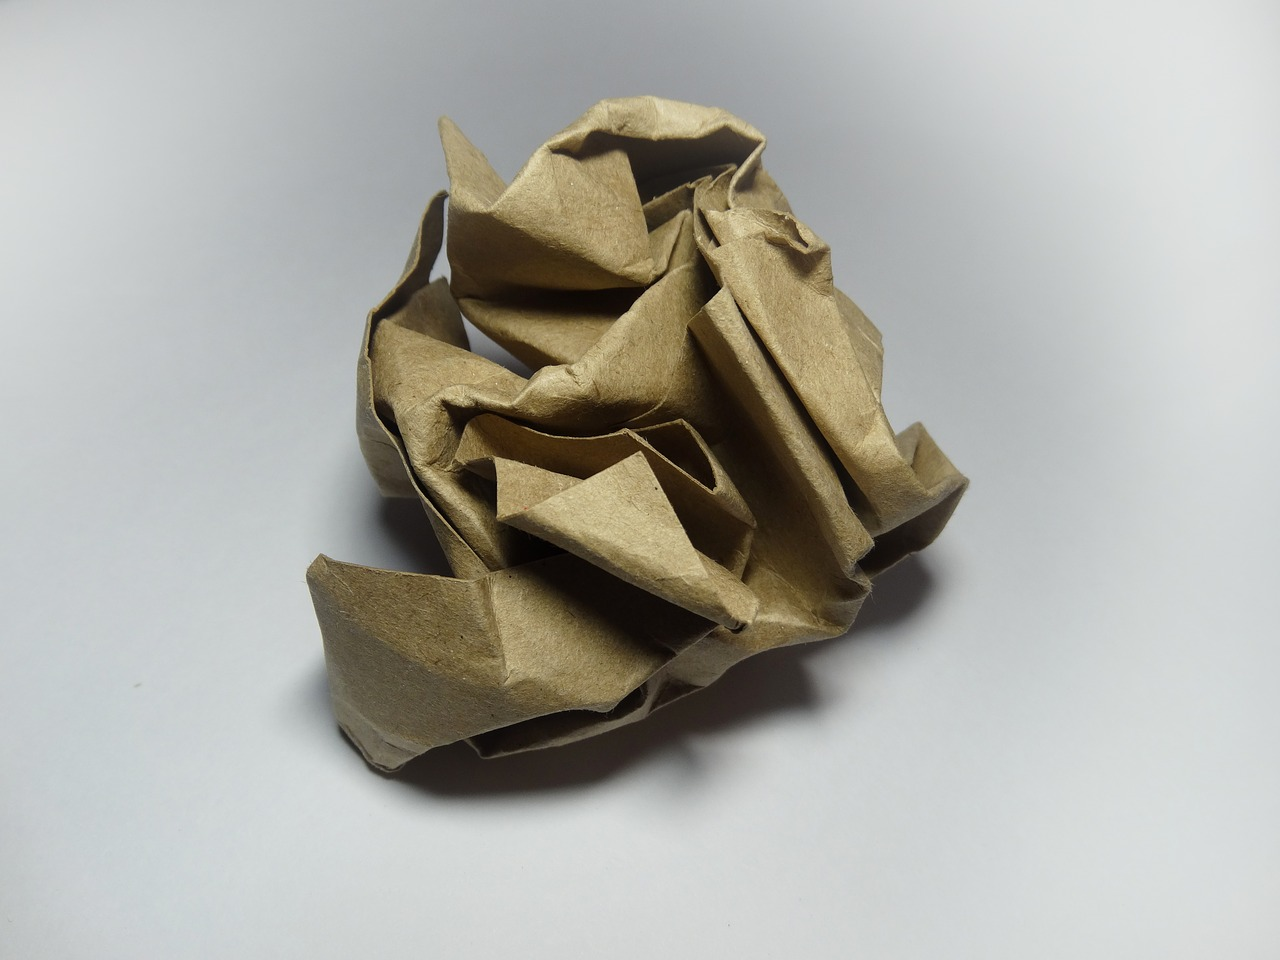 Packing (Kraft) Paper